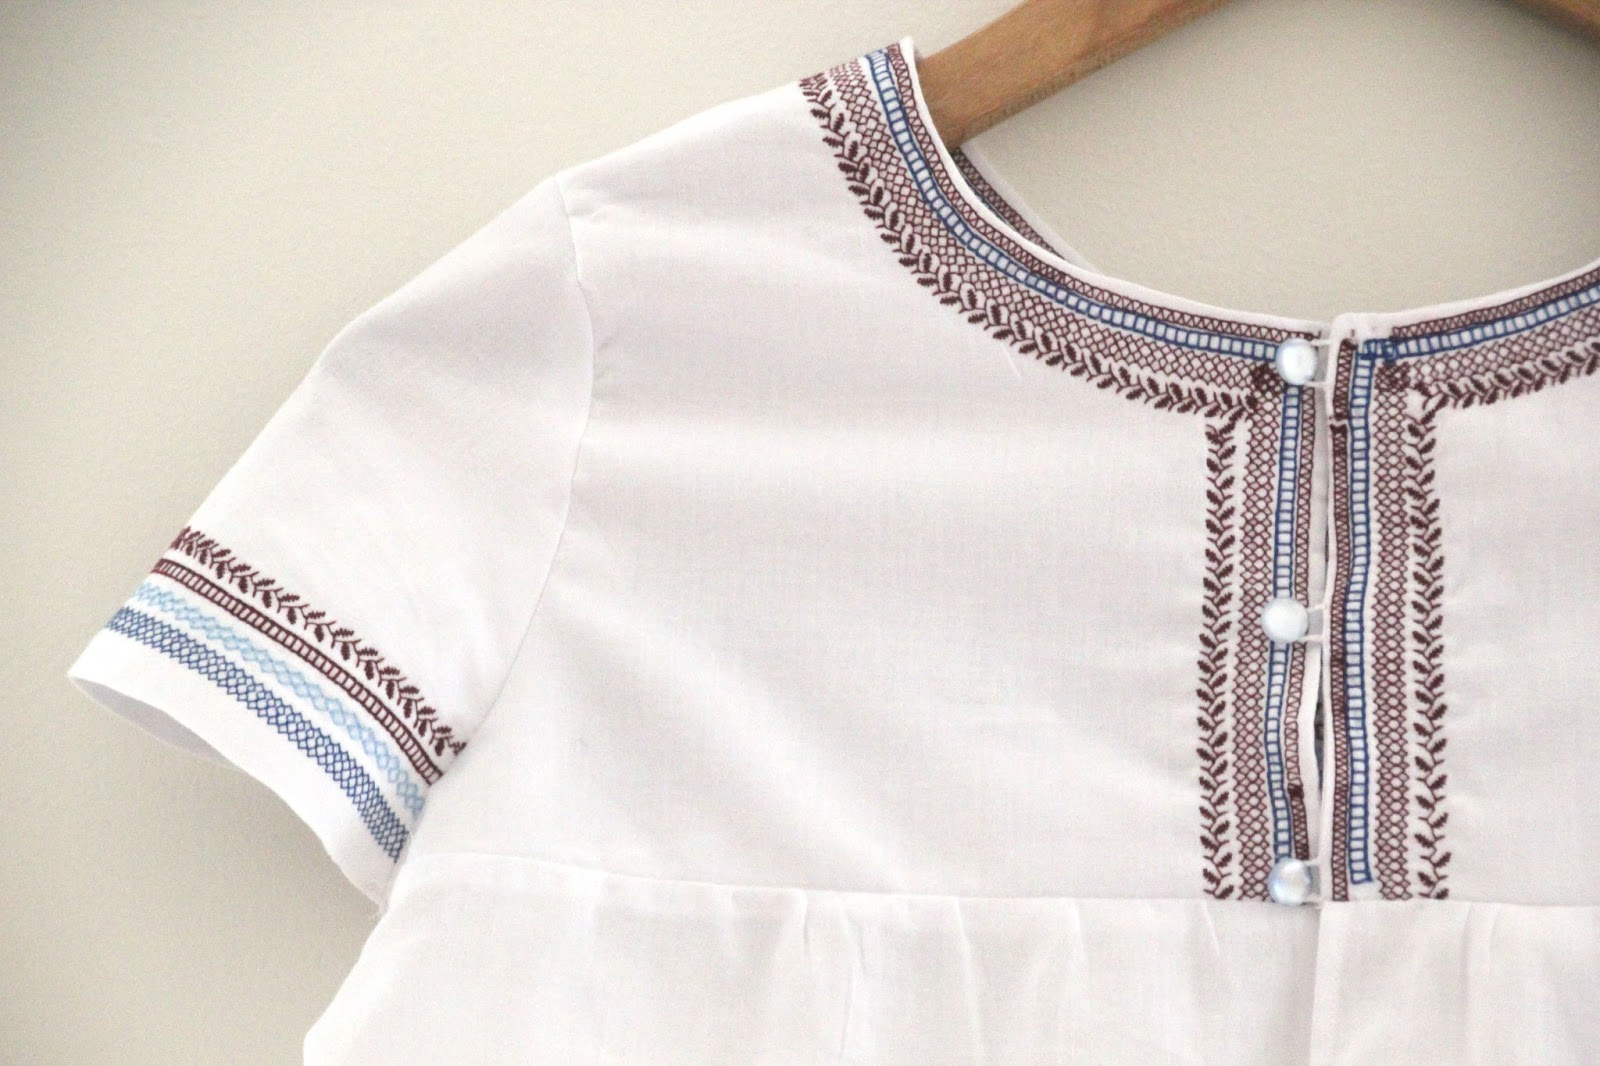 DIY Camiseta Boho (patrones gratis) - Handbox Craft Lovers ...